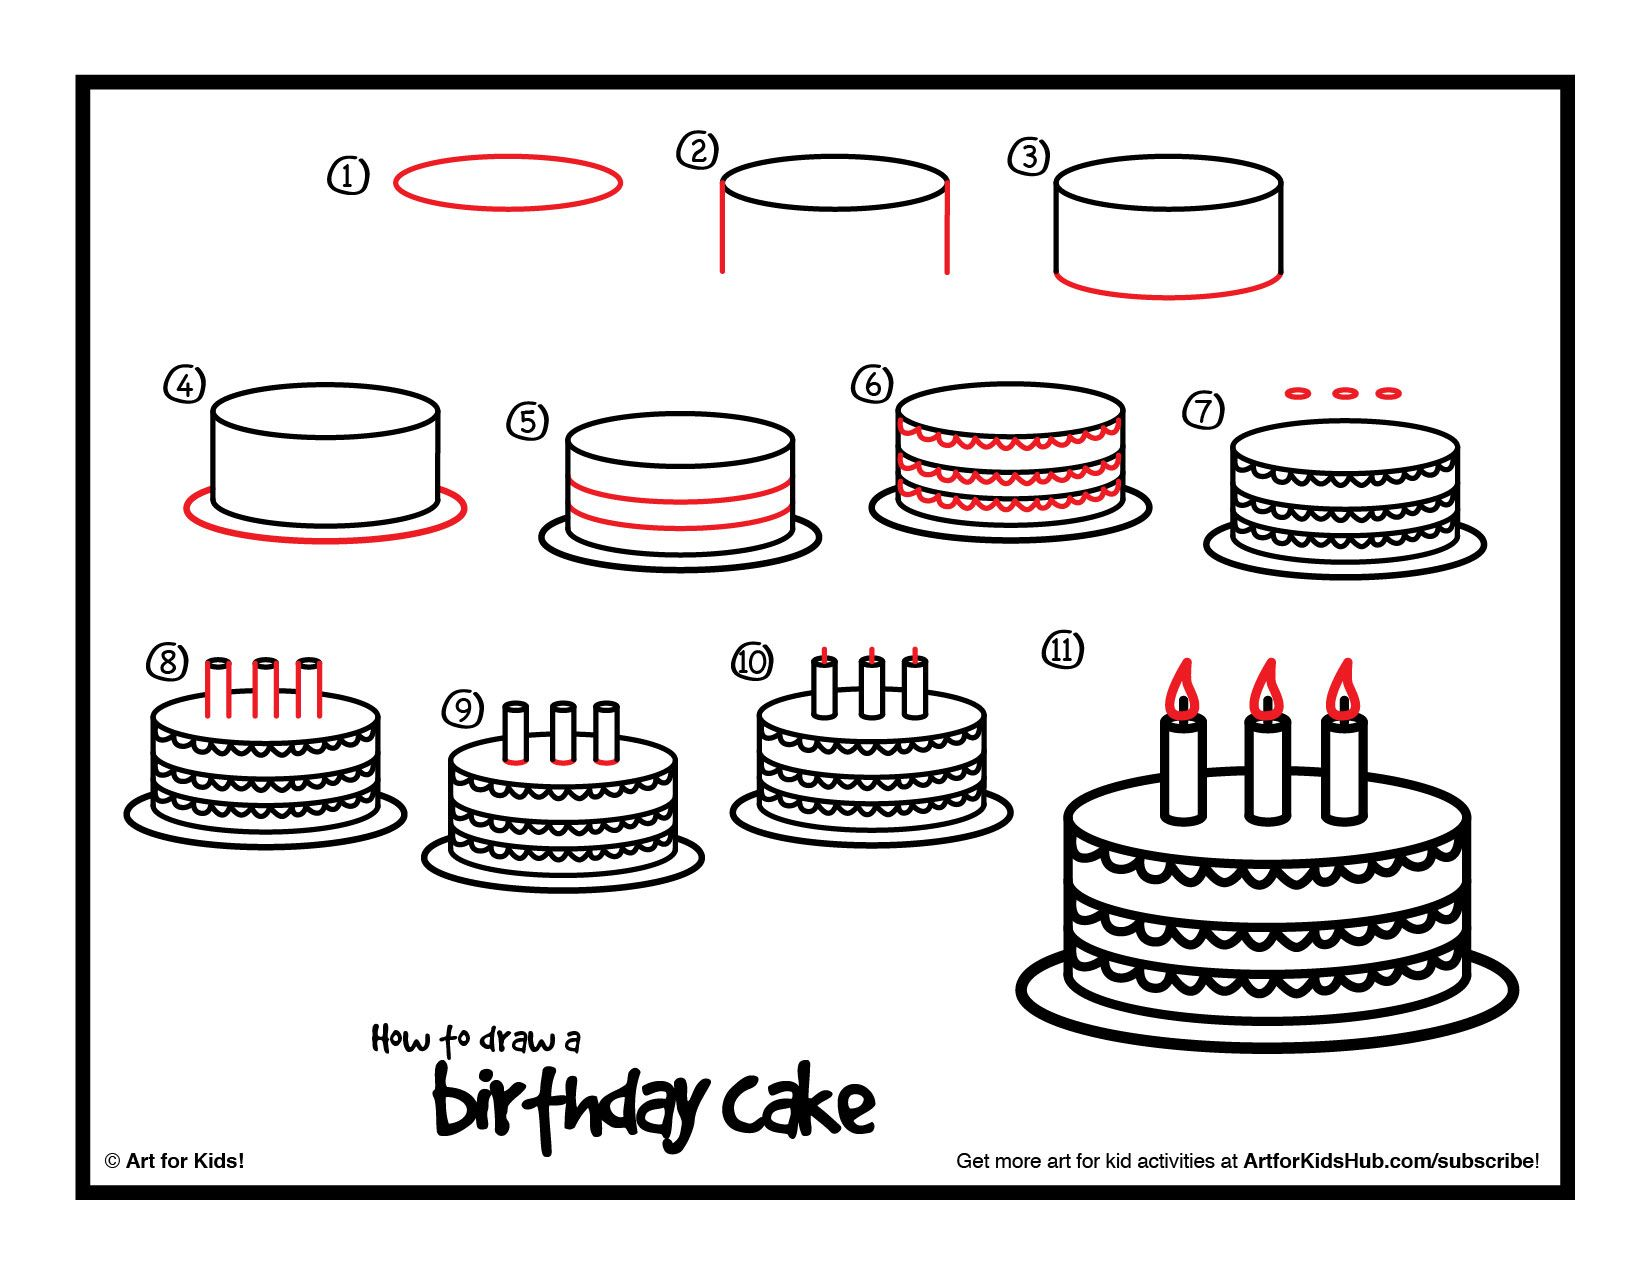 How To Draw A Birthday Cake Art For Kids Hub Chalkboard